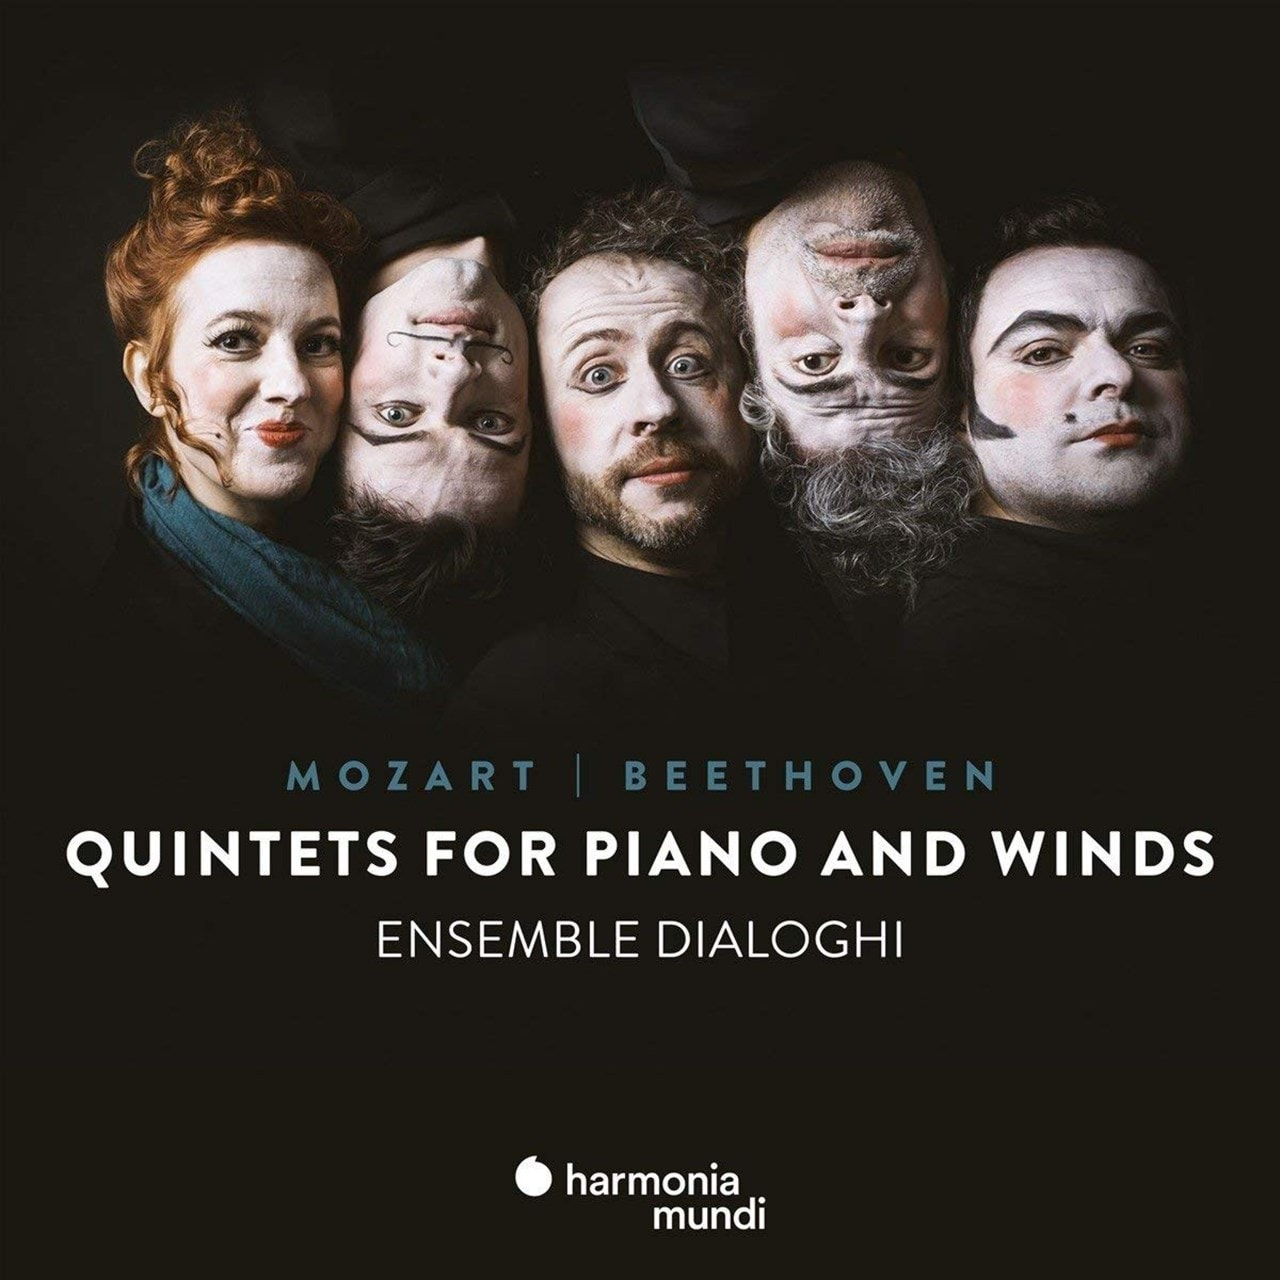 Mozart/Beethoven: Quintets for Piano and Winds - 1